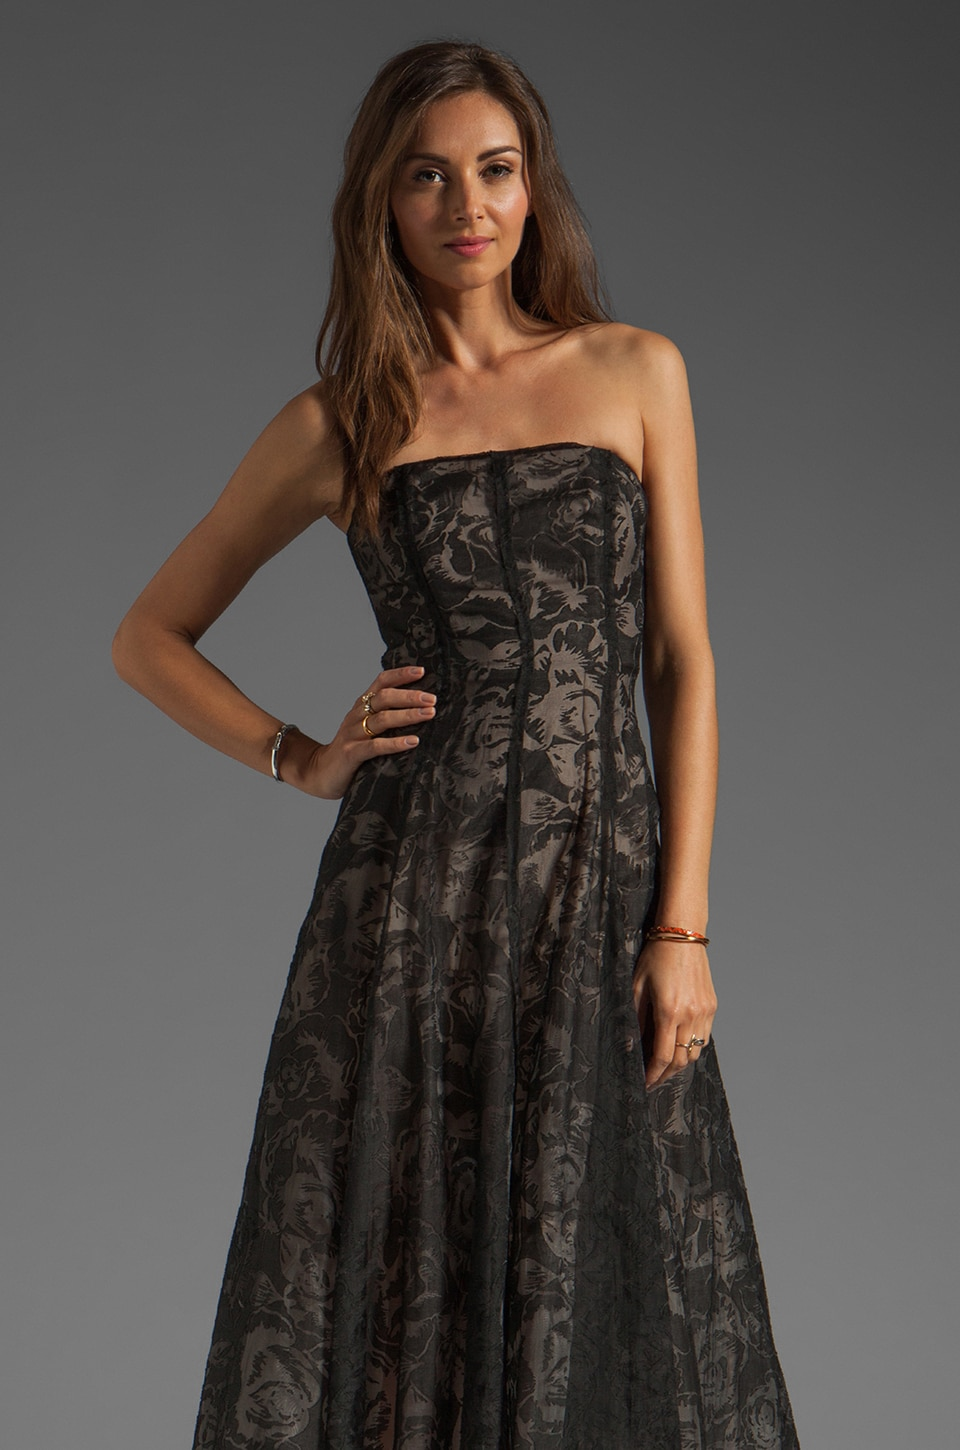 Tracy Reese Burnout Floral w/ Gauze Deconstructed Strapless Dress in Black